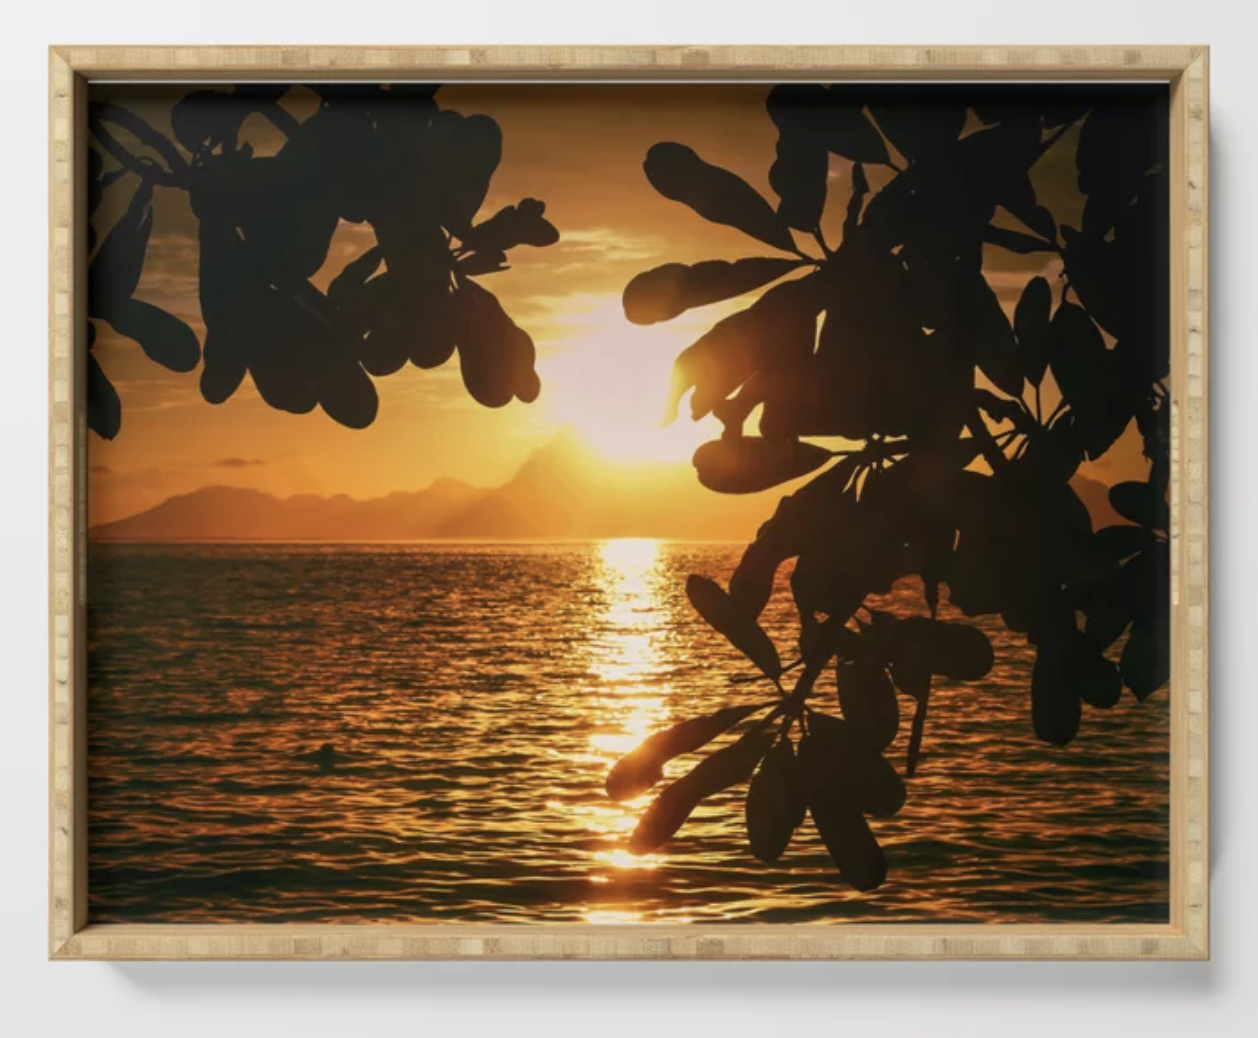 Golden Tahiti Sunset Behind Island Serving Tray, Prints and More  by  Ryyoung